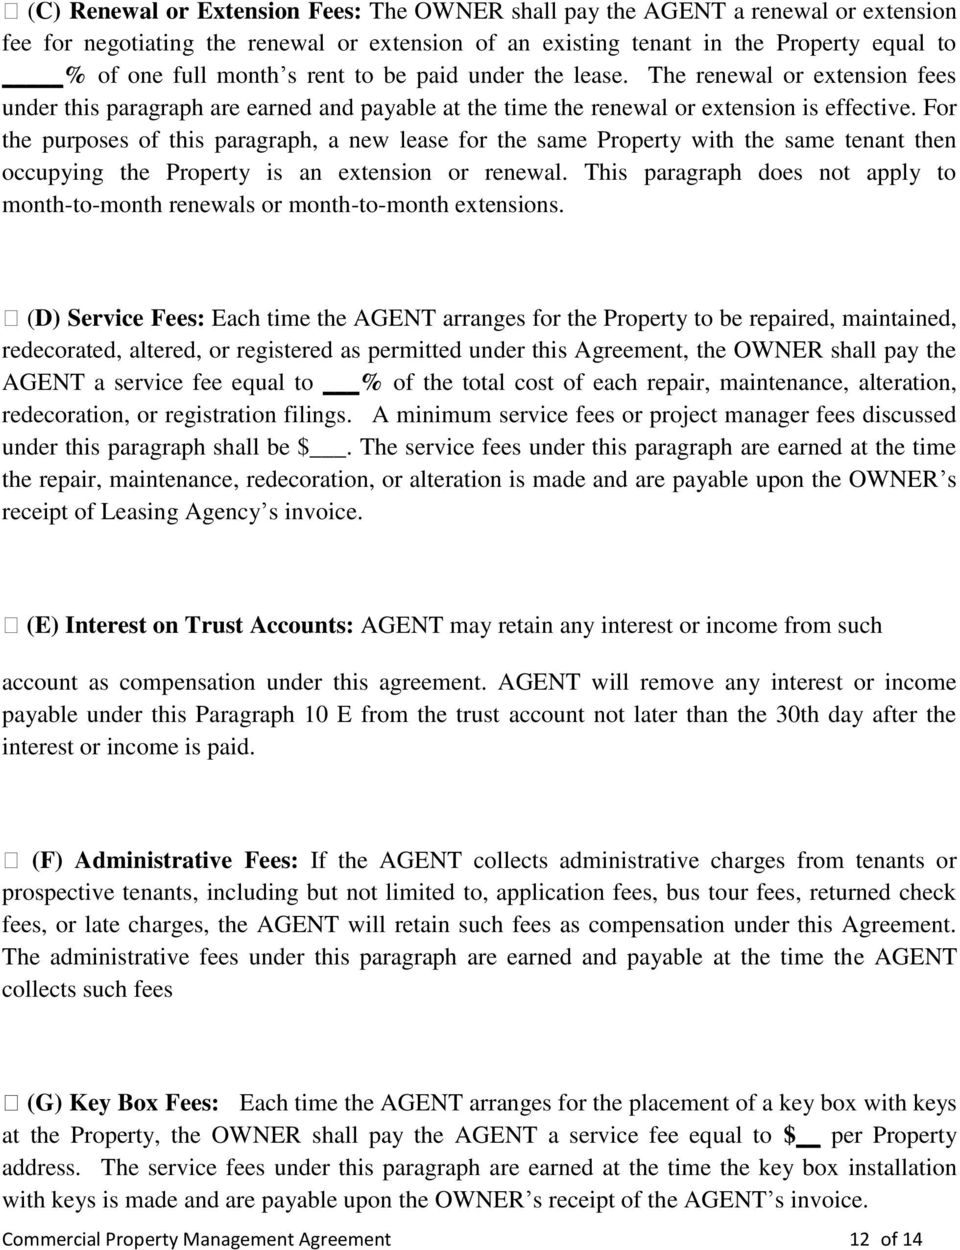 For the purposes of this paragraph, a new lease for the same Property with the same tenant then occupying the Property is an extension or renewal.